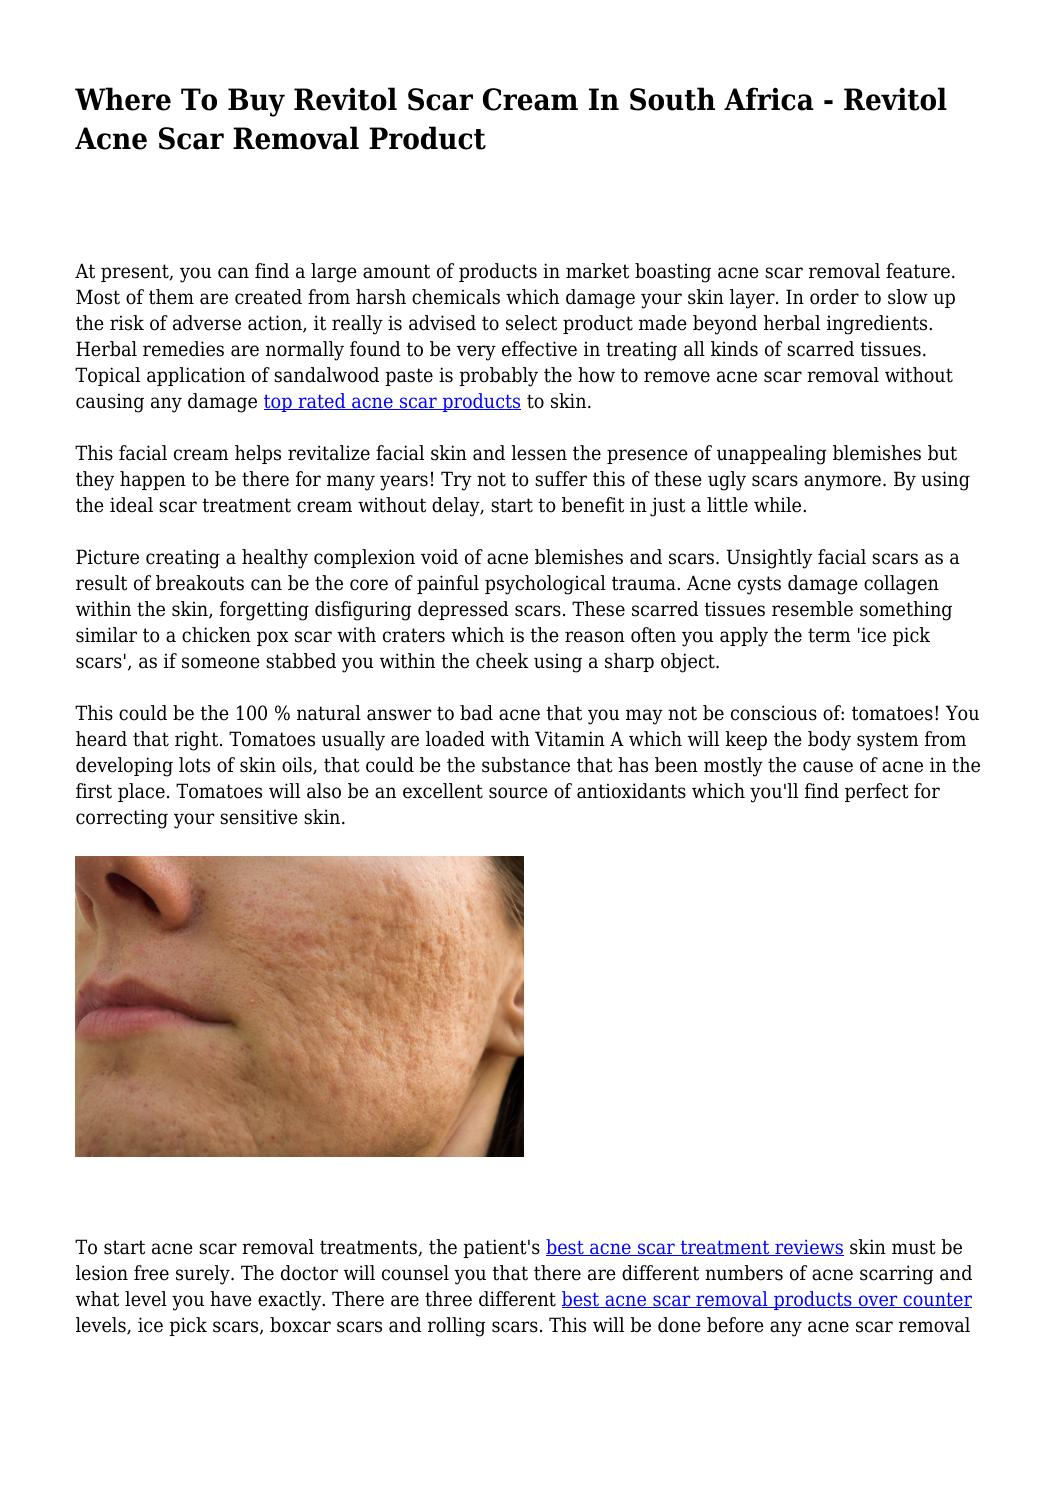 Where To Buy Revitol Scar Cream In South Africa Revitol Acne Scar Removal Product By Statuesqueelect30 Issuu